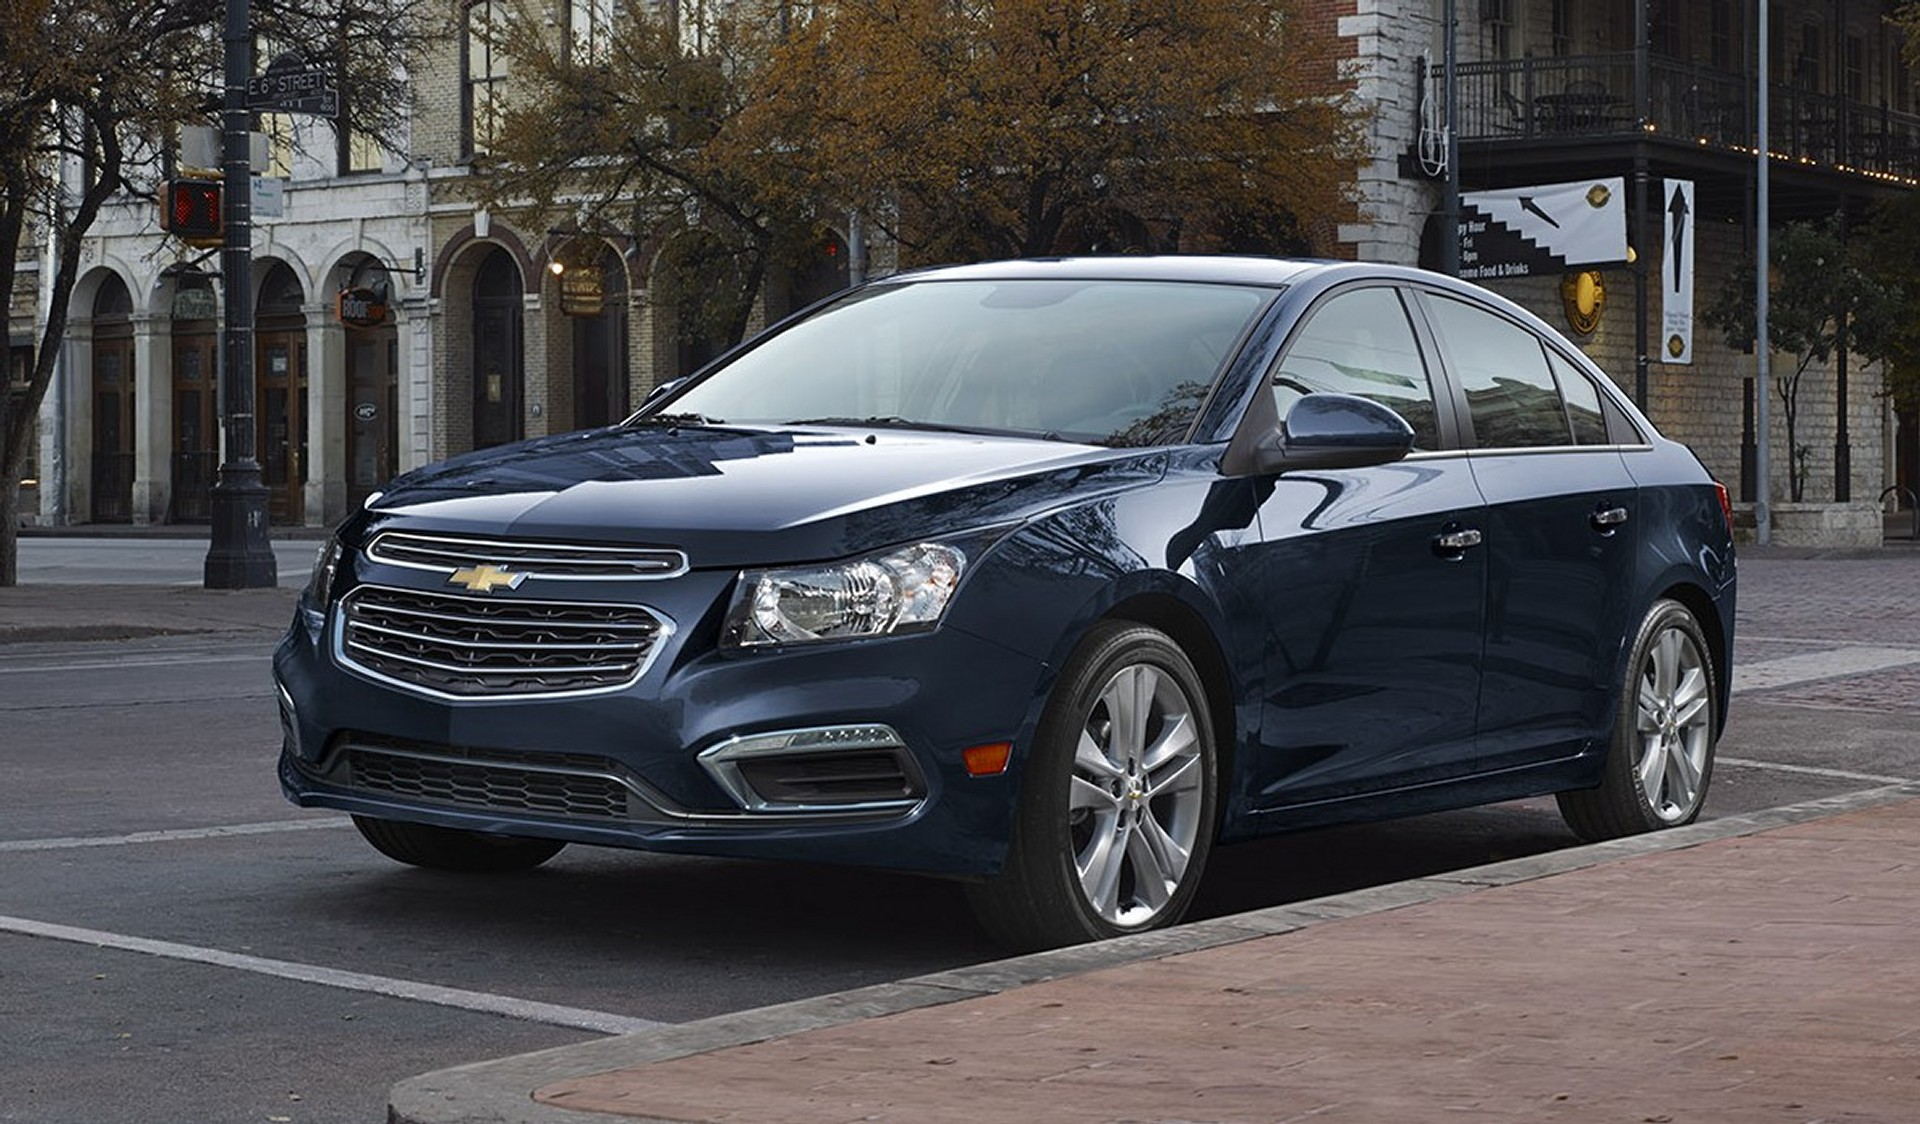 2015 chevrolet cruze chevy review ratings specs. Black Bedroom Furniture Sets. Home Design Ideas